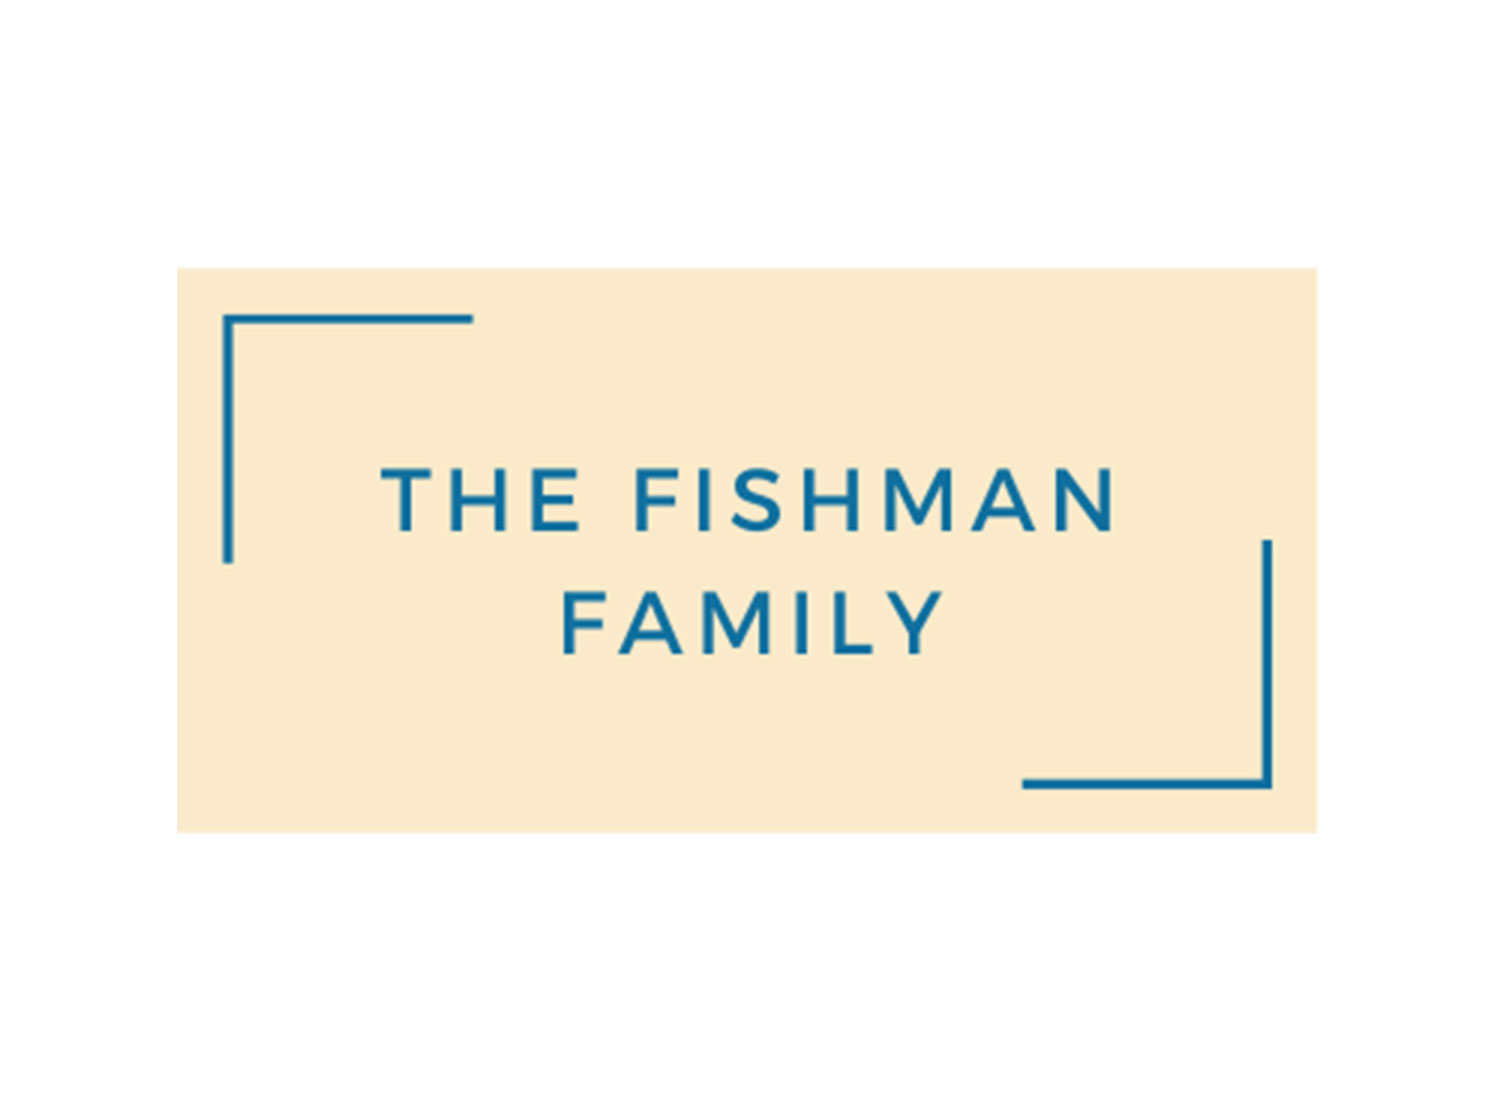 The-Fishman-Family-selfless-love-foundation-supporting-sponsor-2021-gala